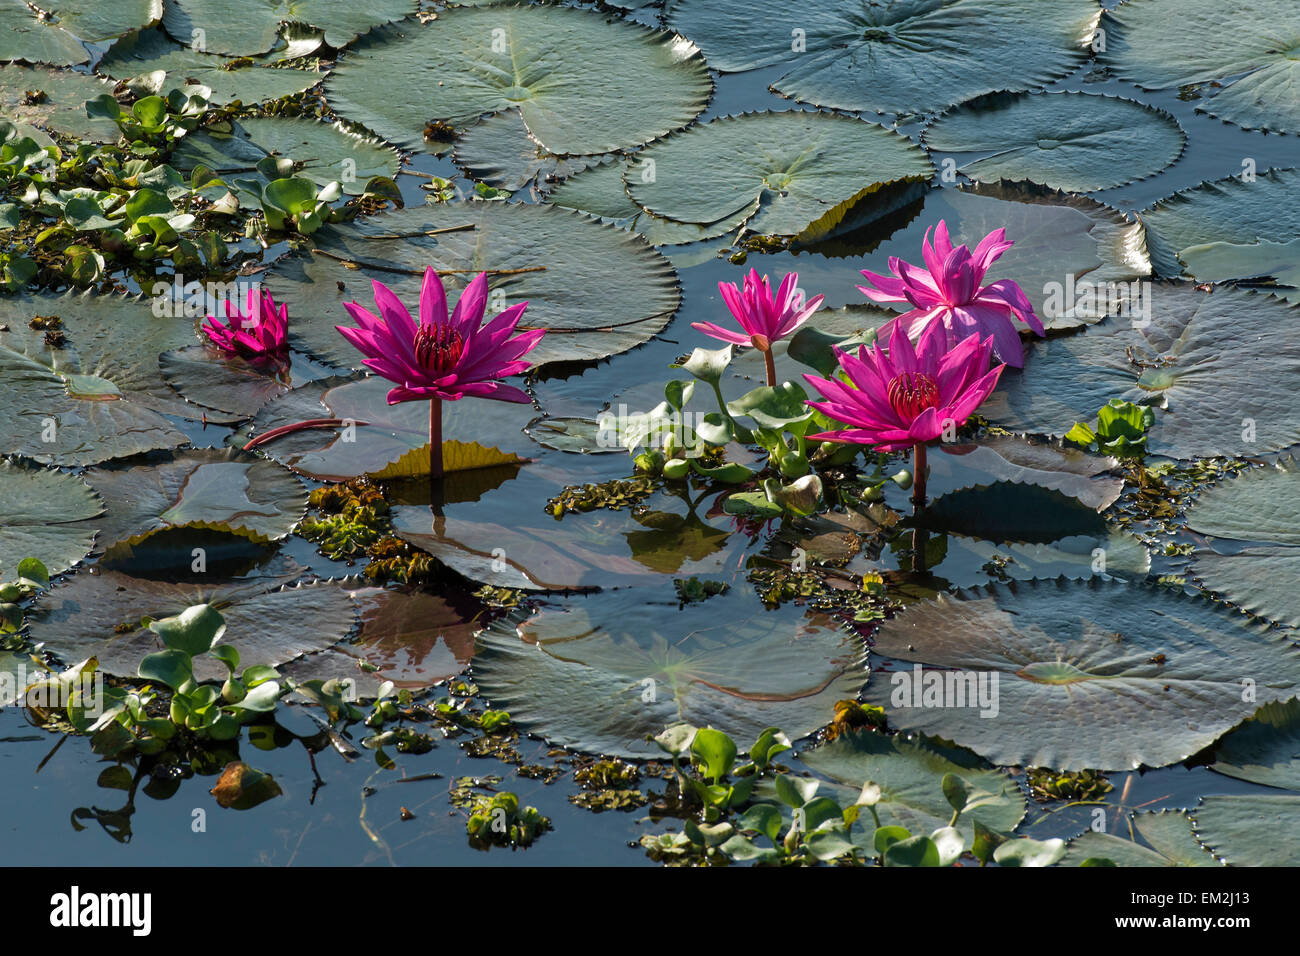 Kerala lotus flower stock photos kerala lotus flower stock images lotus flowers nelumbo vembanad lake kerala south india india izmirmasajfo